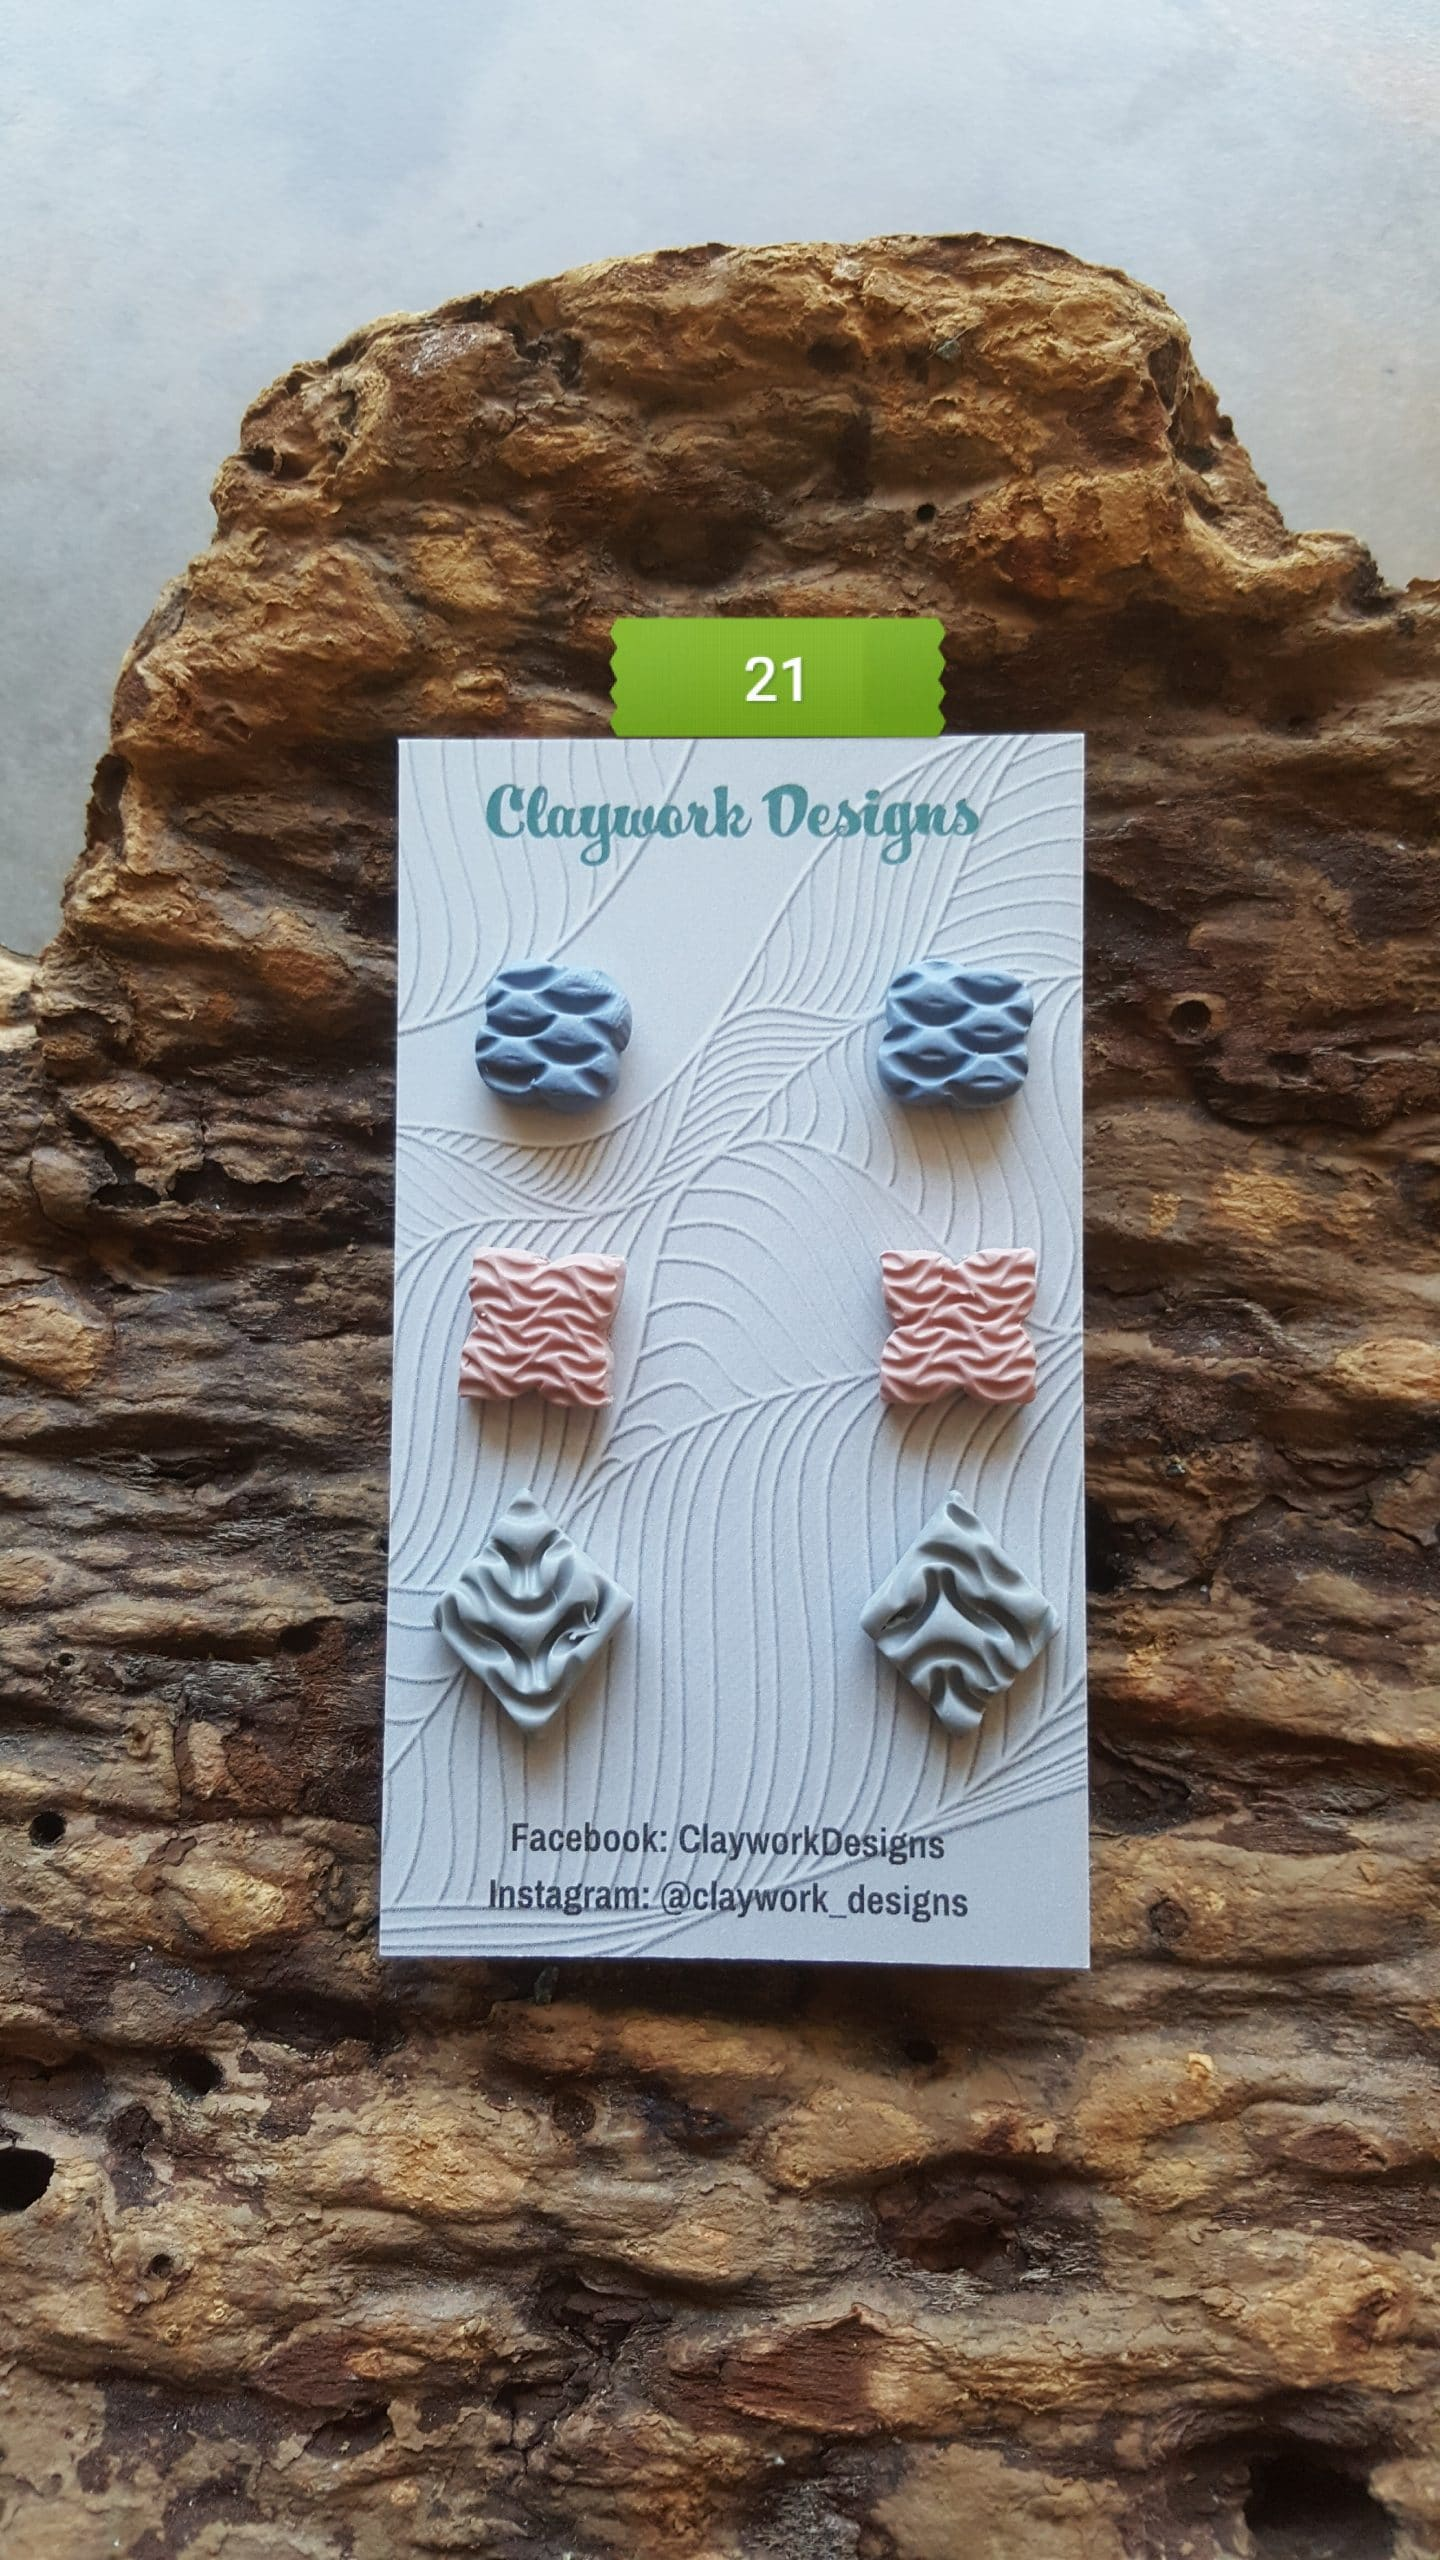 Wirework Designs | Handcrafted chainmaille jewellery and chainmaille products | Chainmaille Weave Stud Earring - 3 Packs | 20210620_173014